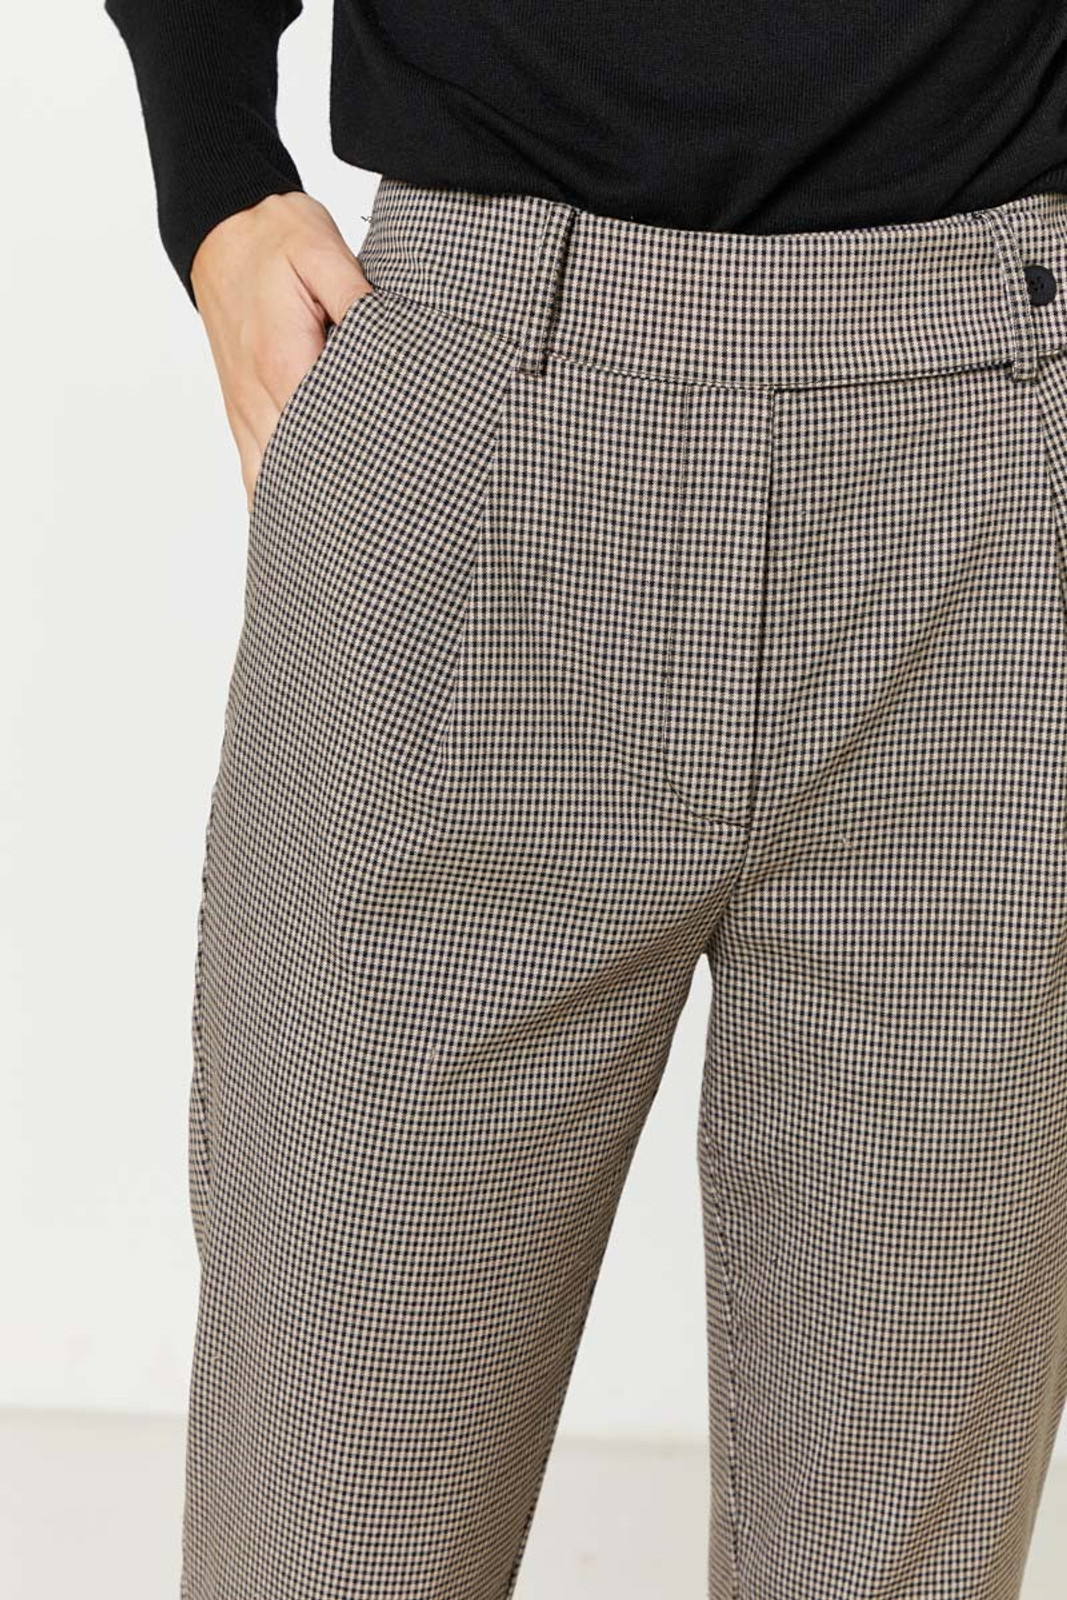 Elka Collective Henley Pant Multi  7